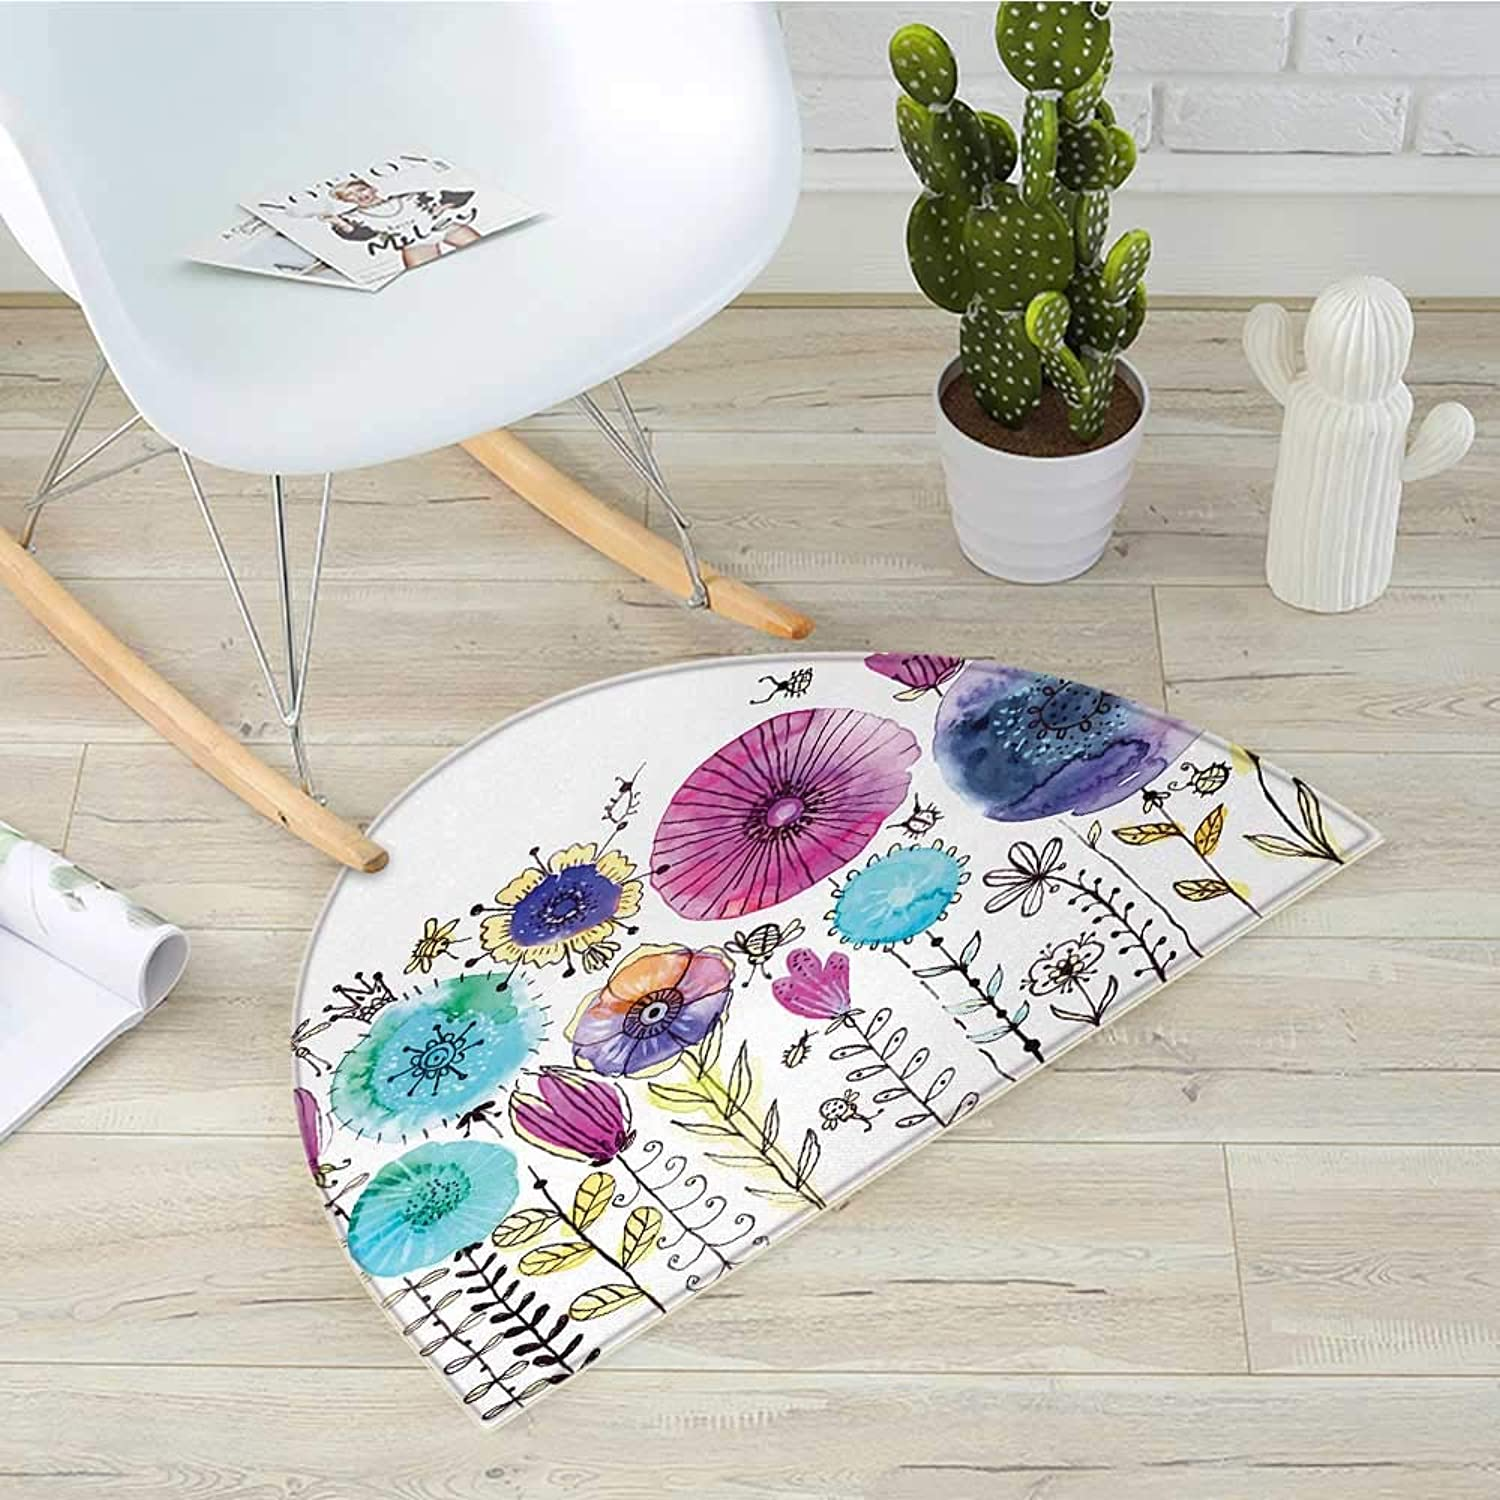 Dragonfly Semicircular CushionHello Summer Concept with Cute Dandelion and Dragonfly Figures Be Happy Artwork Entry Door Mat H 31.5  xD 47.2  Pink bluee